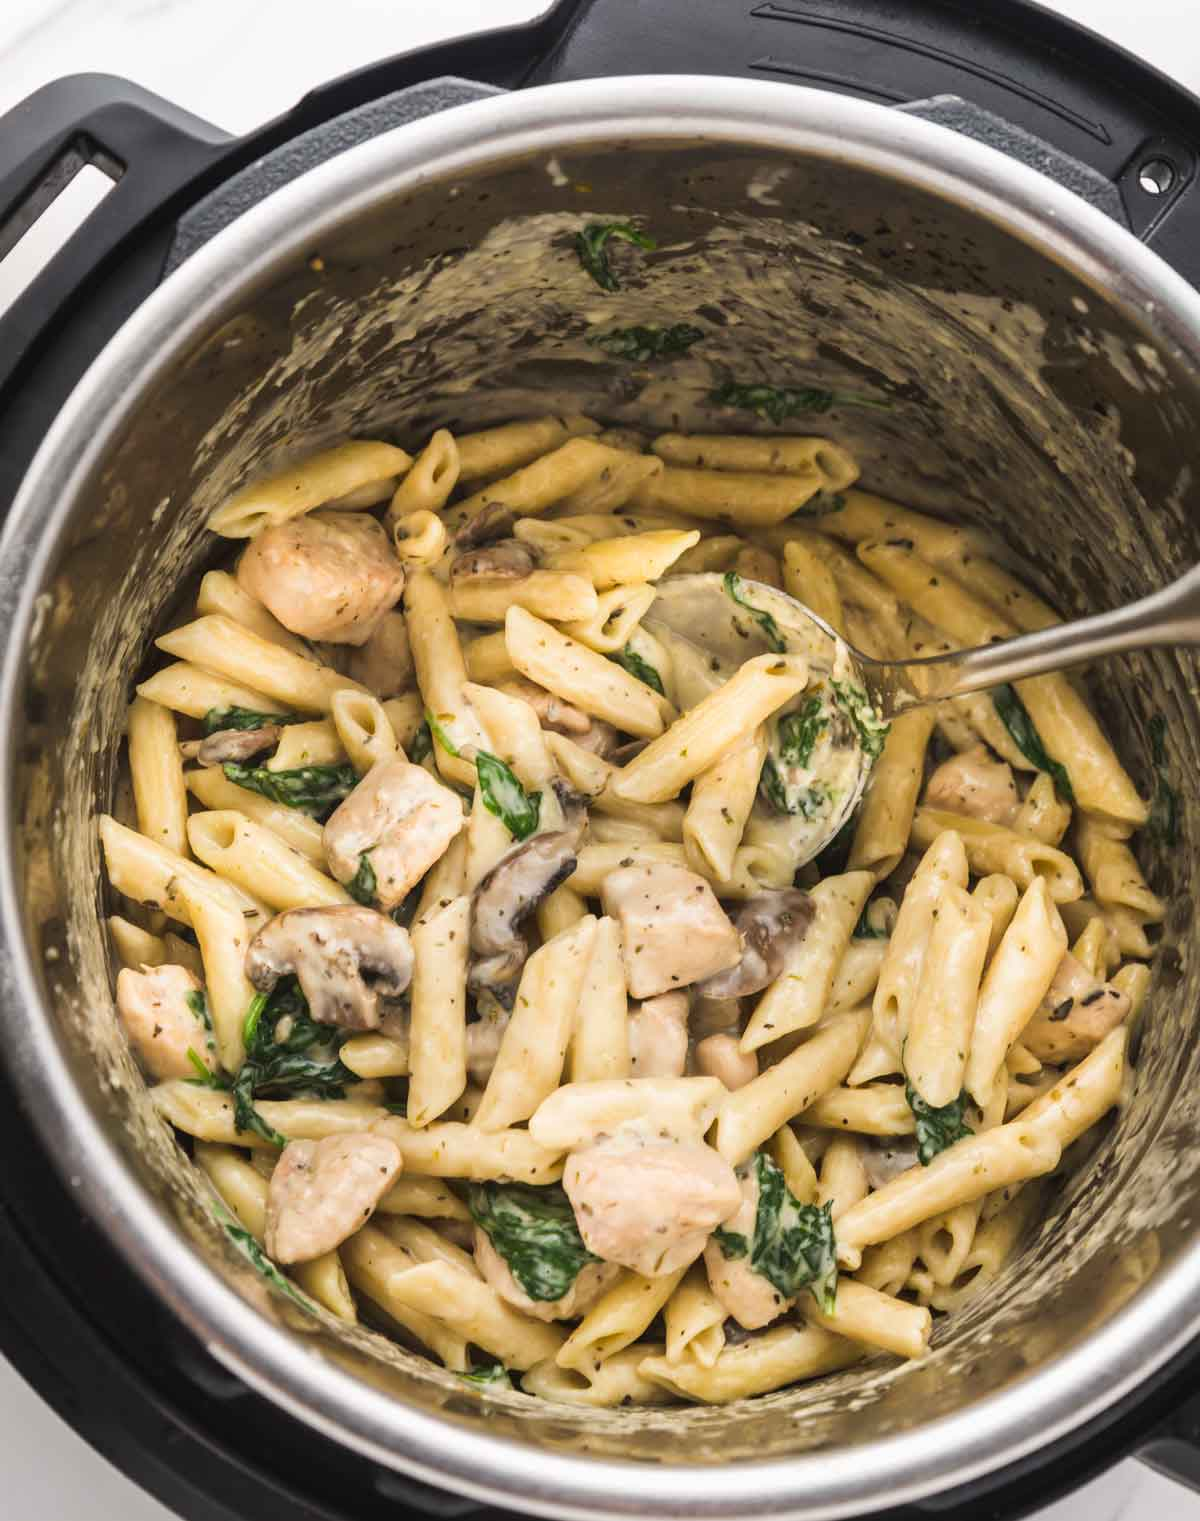 Chicken florentine pasta in the Instant Pot with a serving spoon